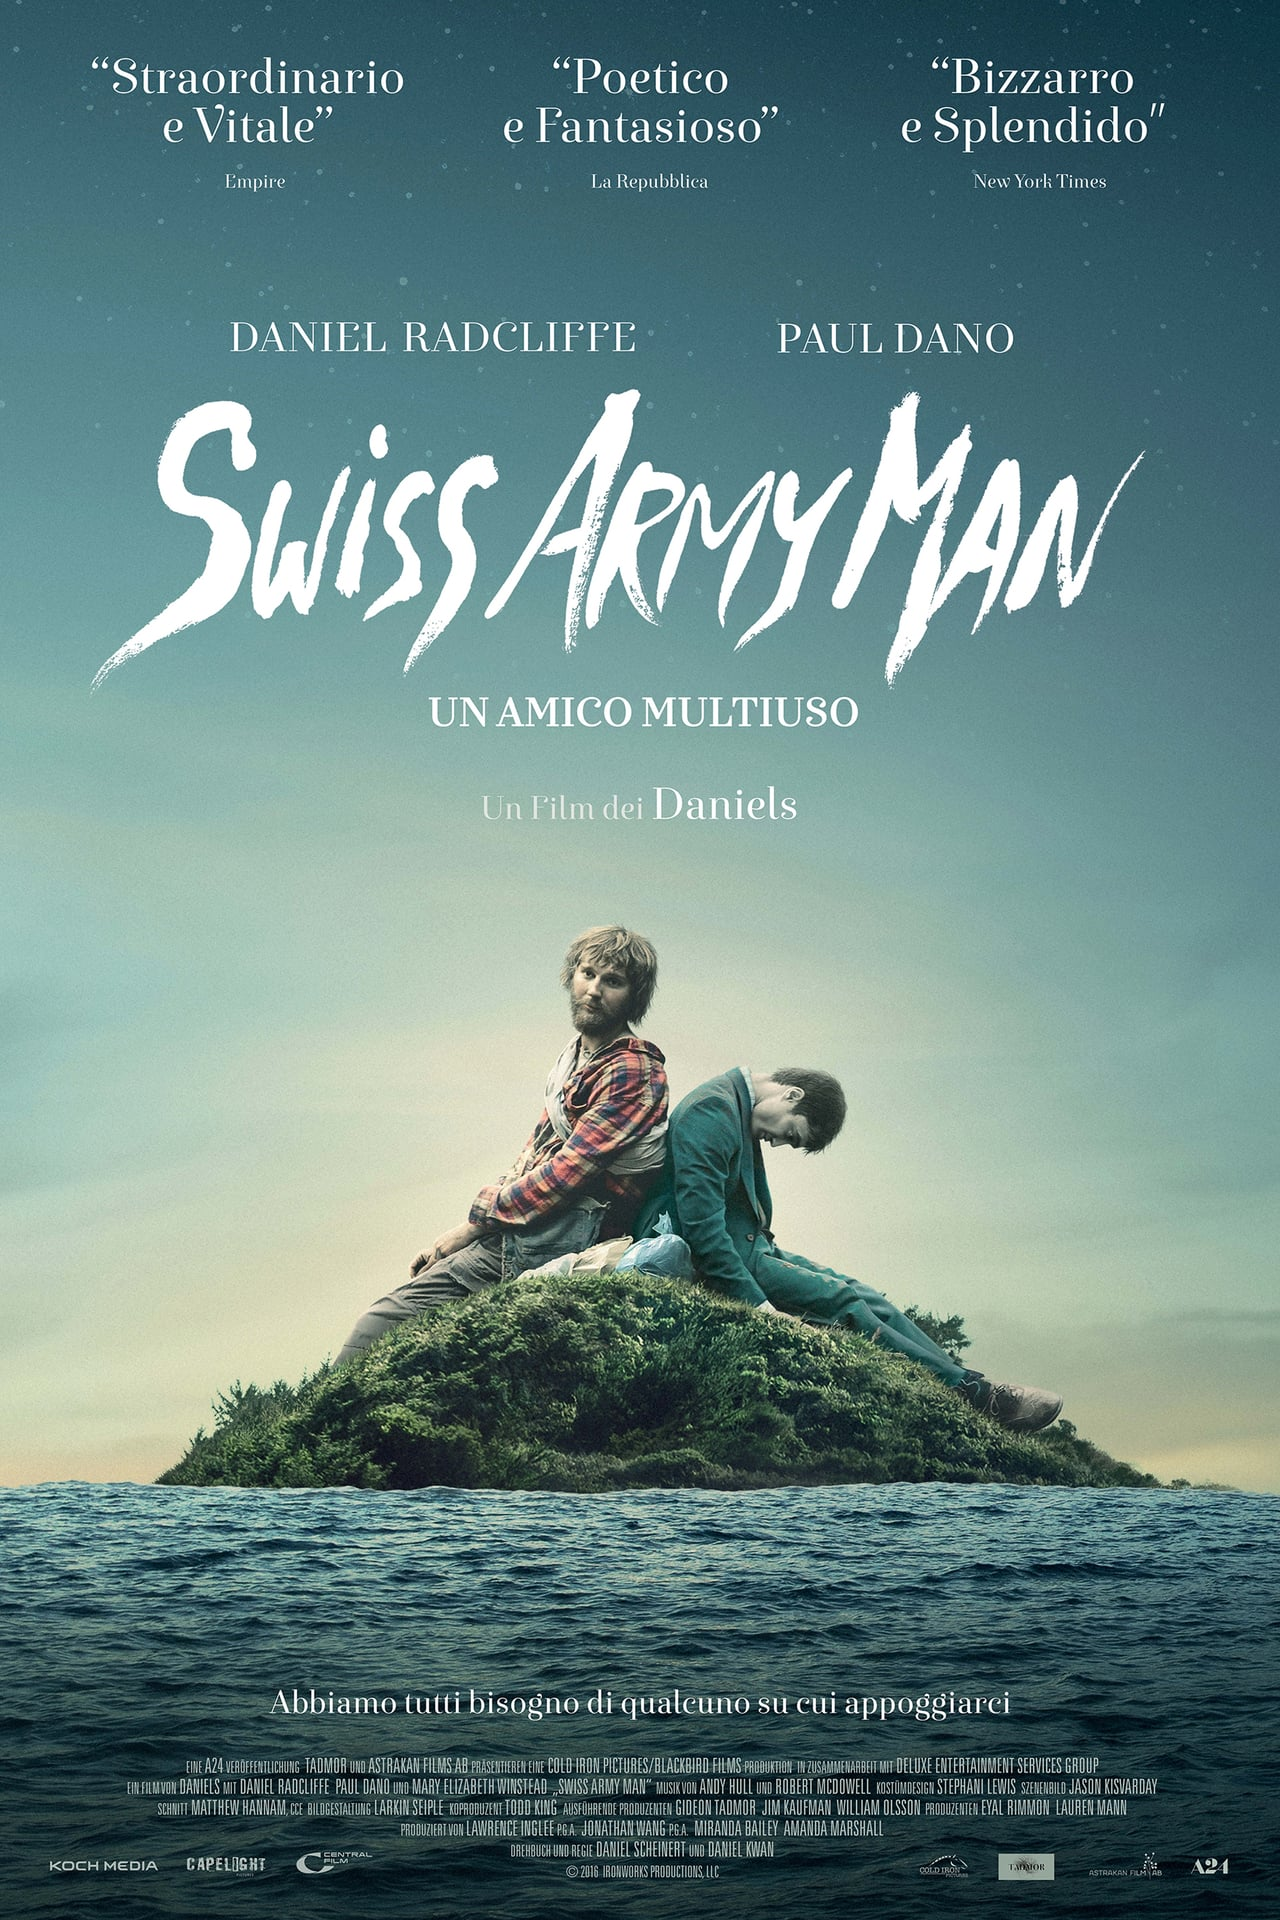 Swiss Army Man - Un amico multiuso